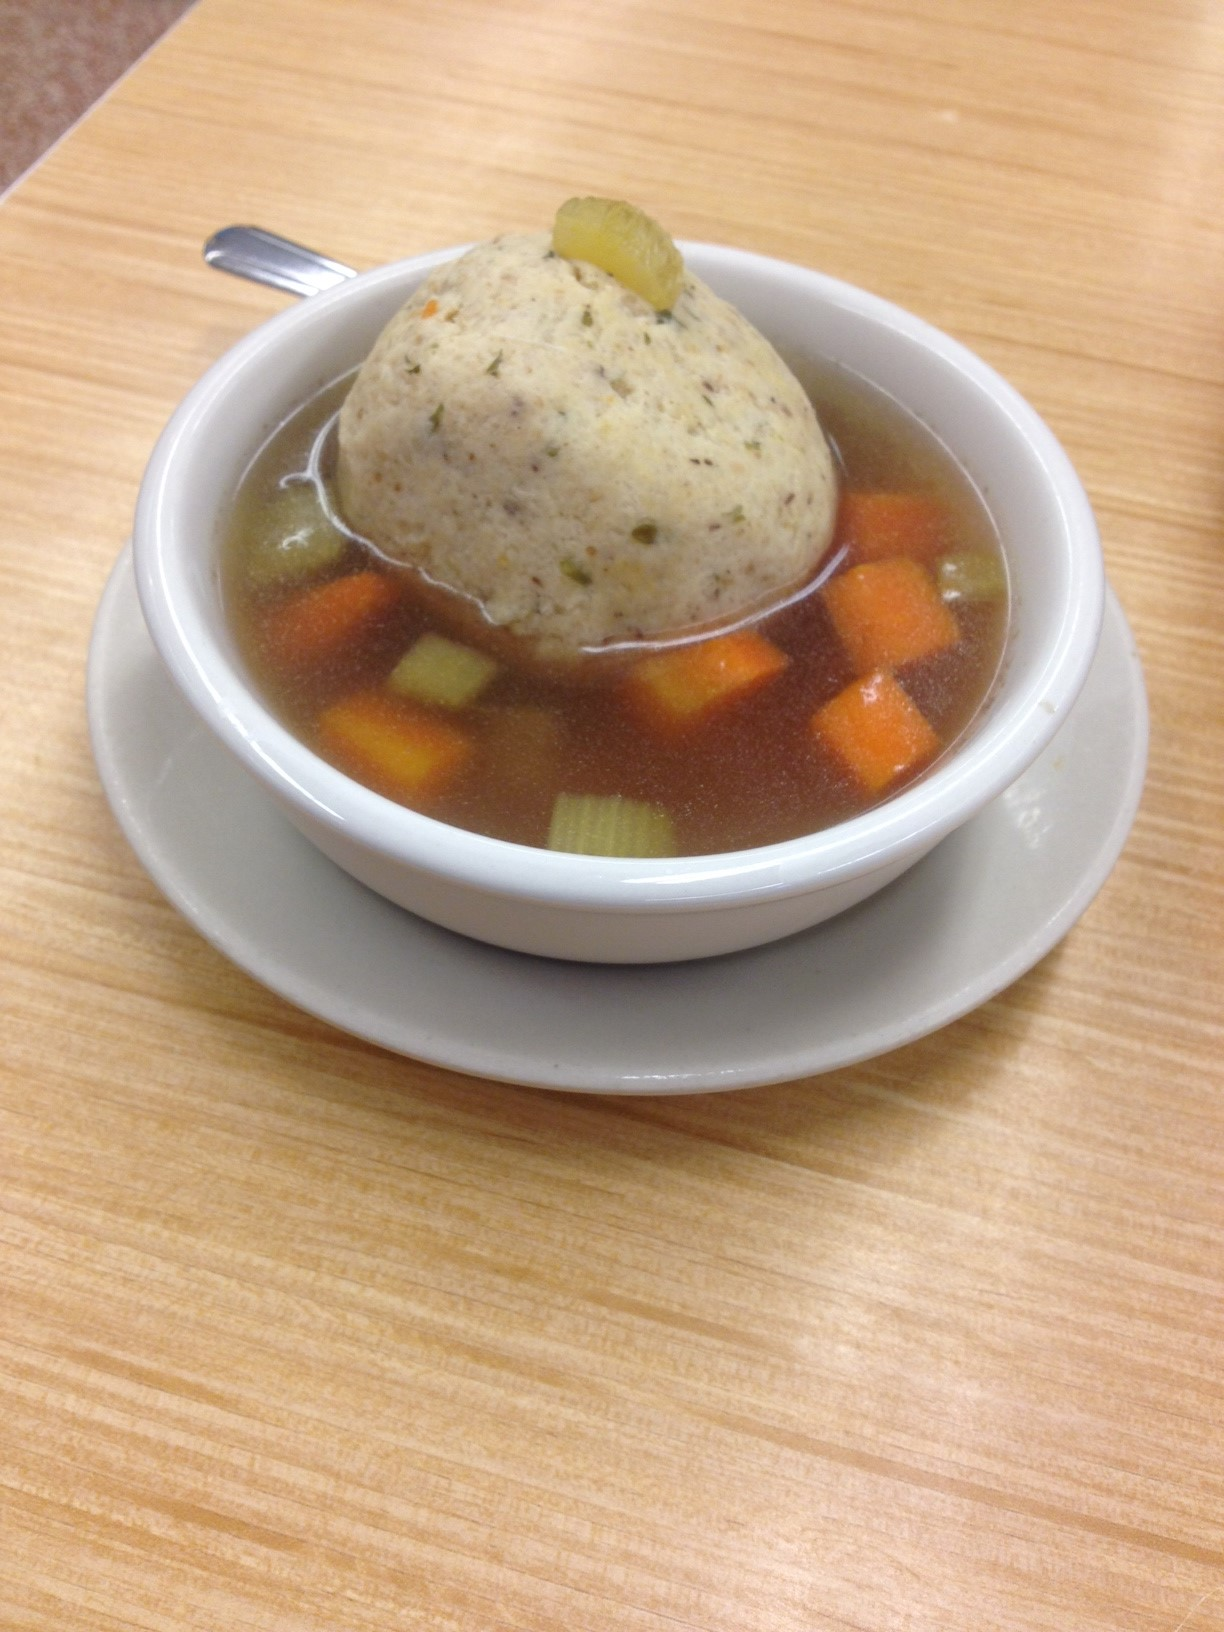 Allegedly, this is Matzo Ball Soup